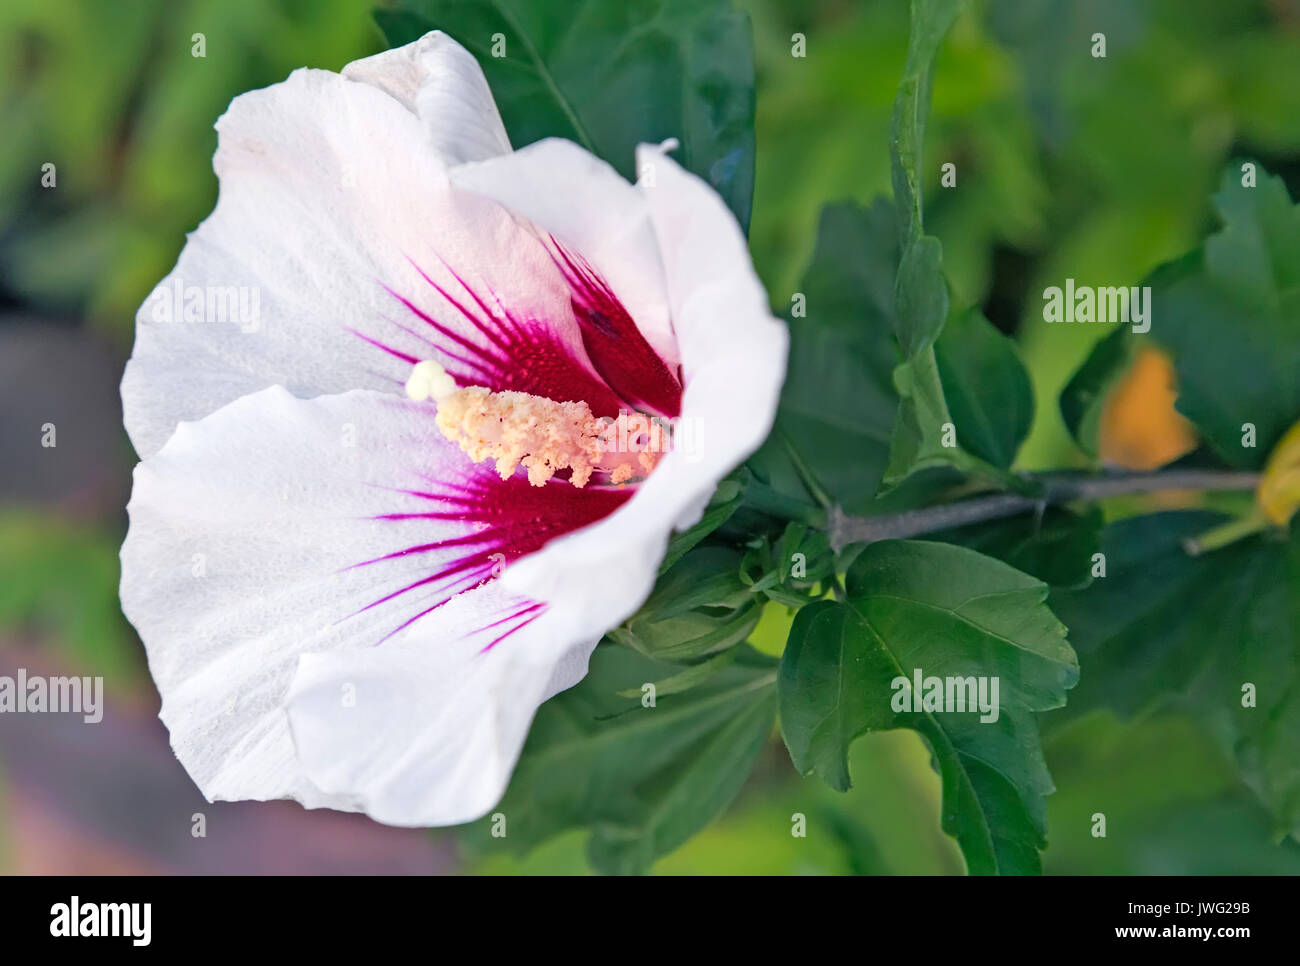 Large Hibiscus Flower With Pink White Petals And Stamens On A Stock